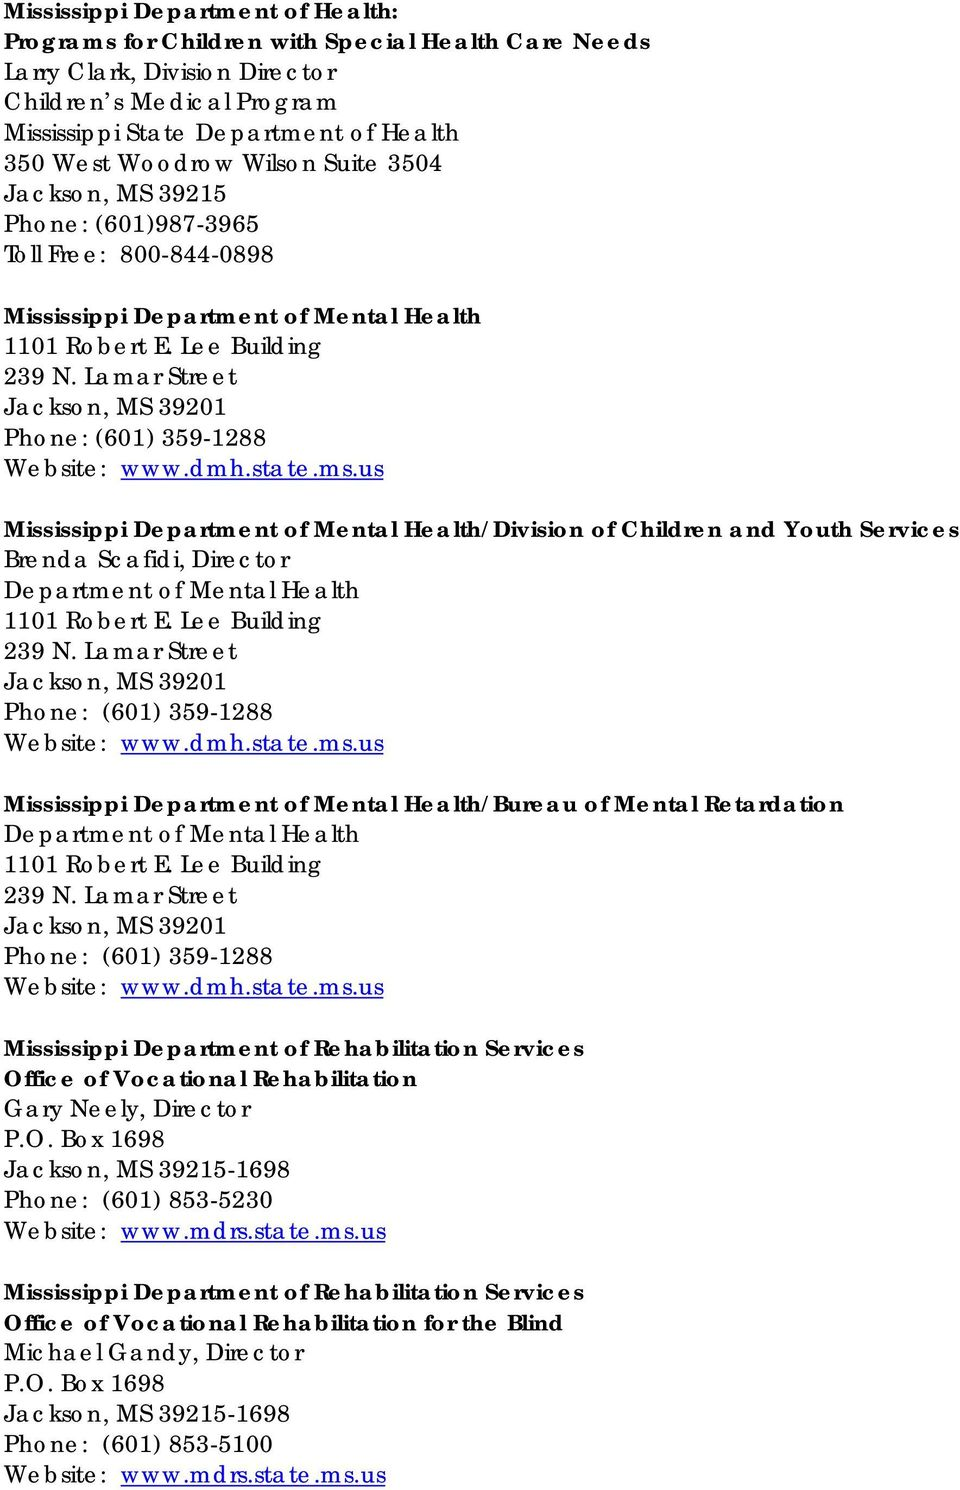 Advocacy And Support Services Mississippi Resources Pdf